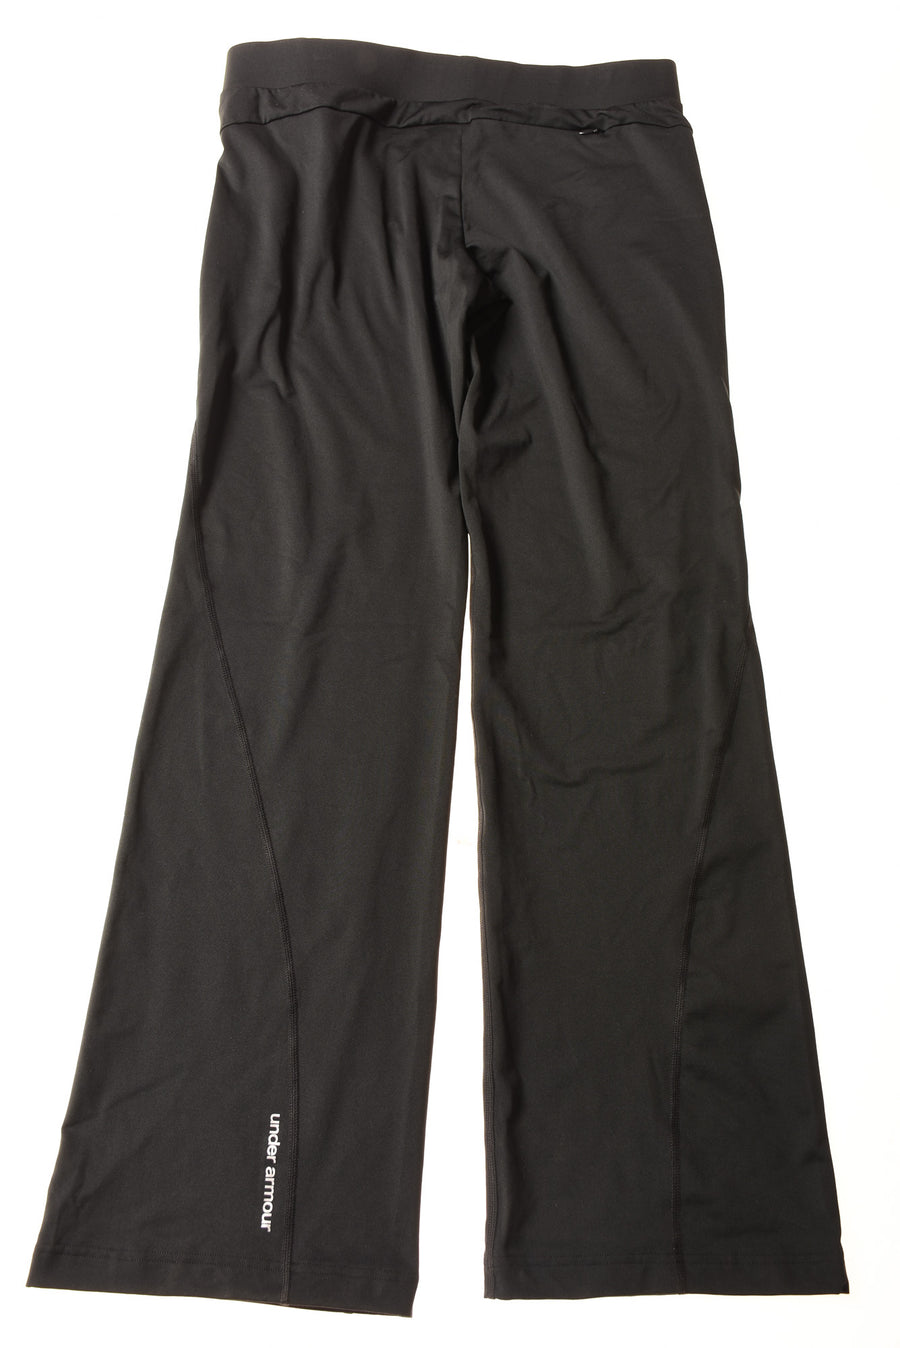 USED Under Armour Women's Pants Large Black